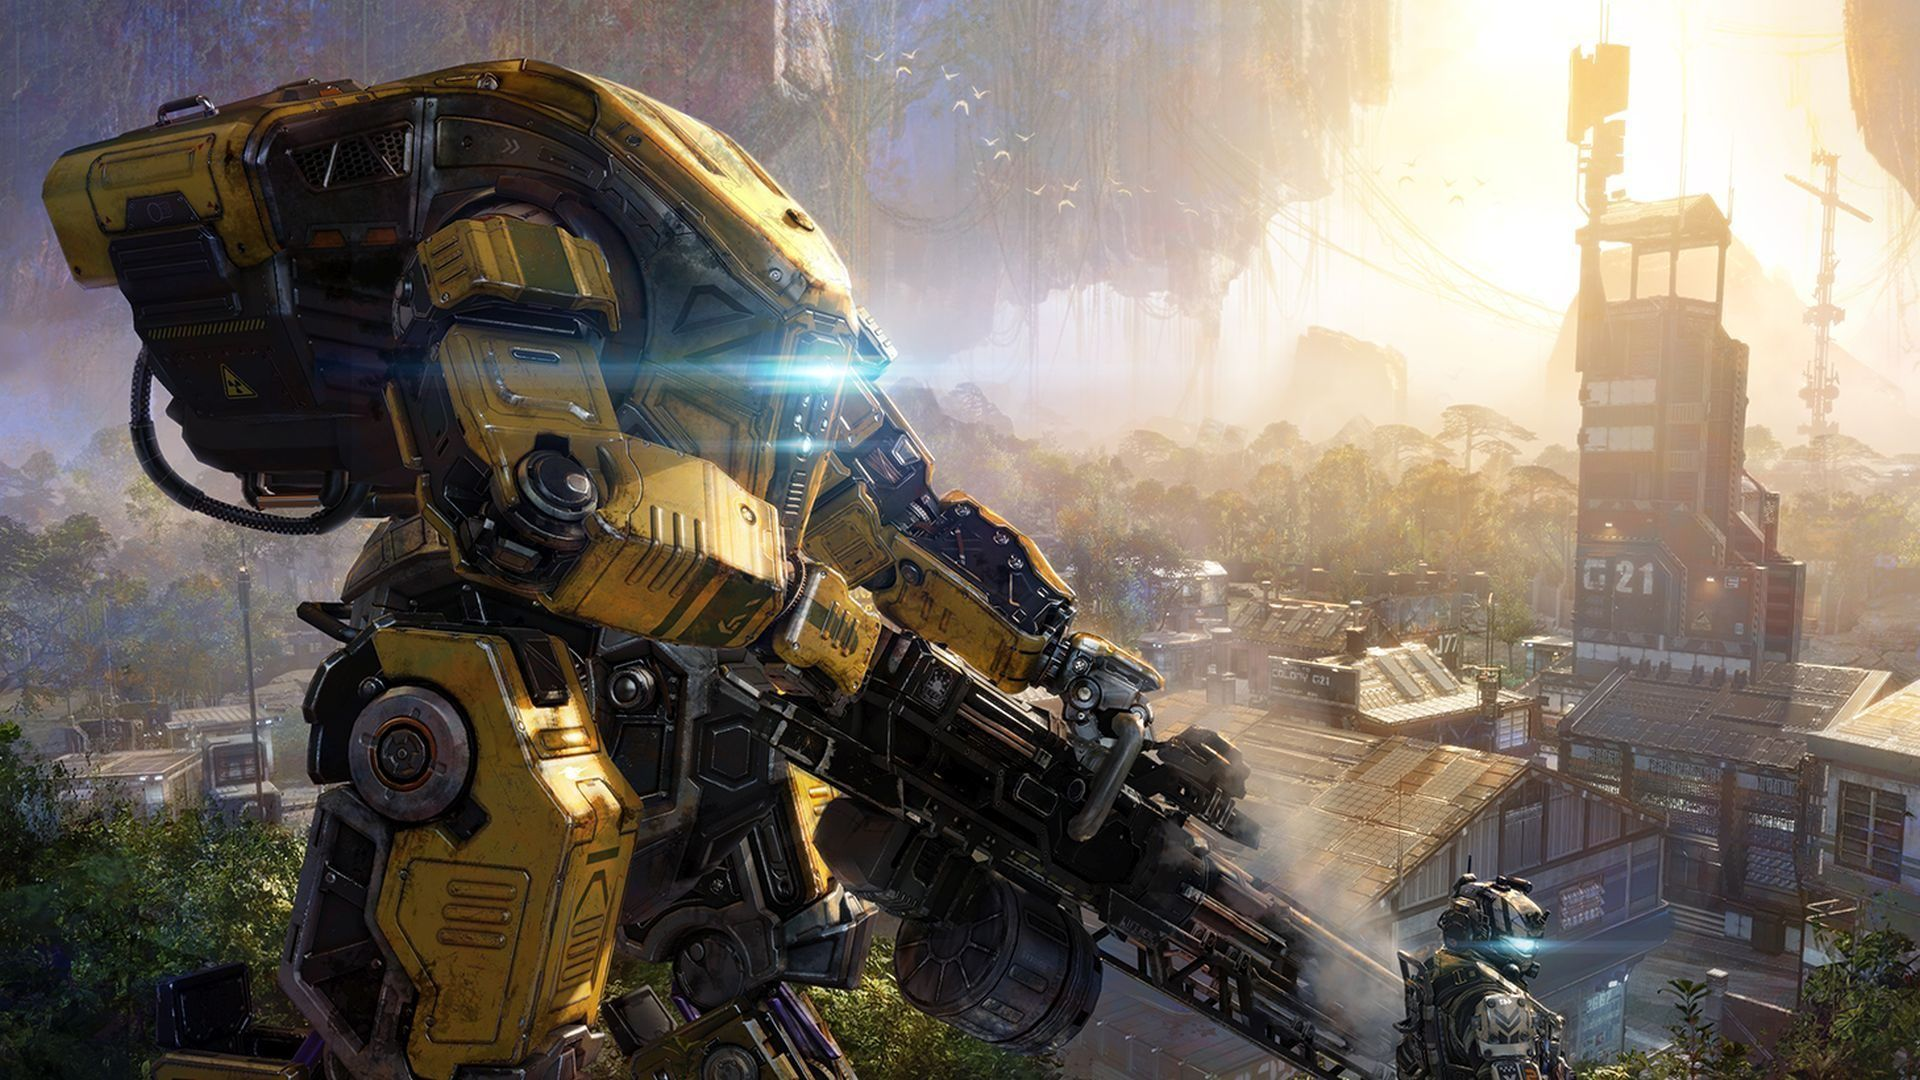 Titanfall 3 could well be on the menu as early as 2022, if EA's new tease is to be believed.